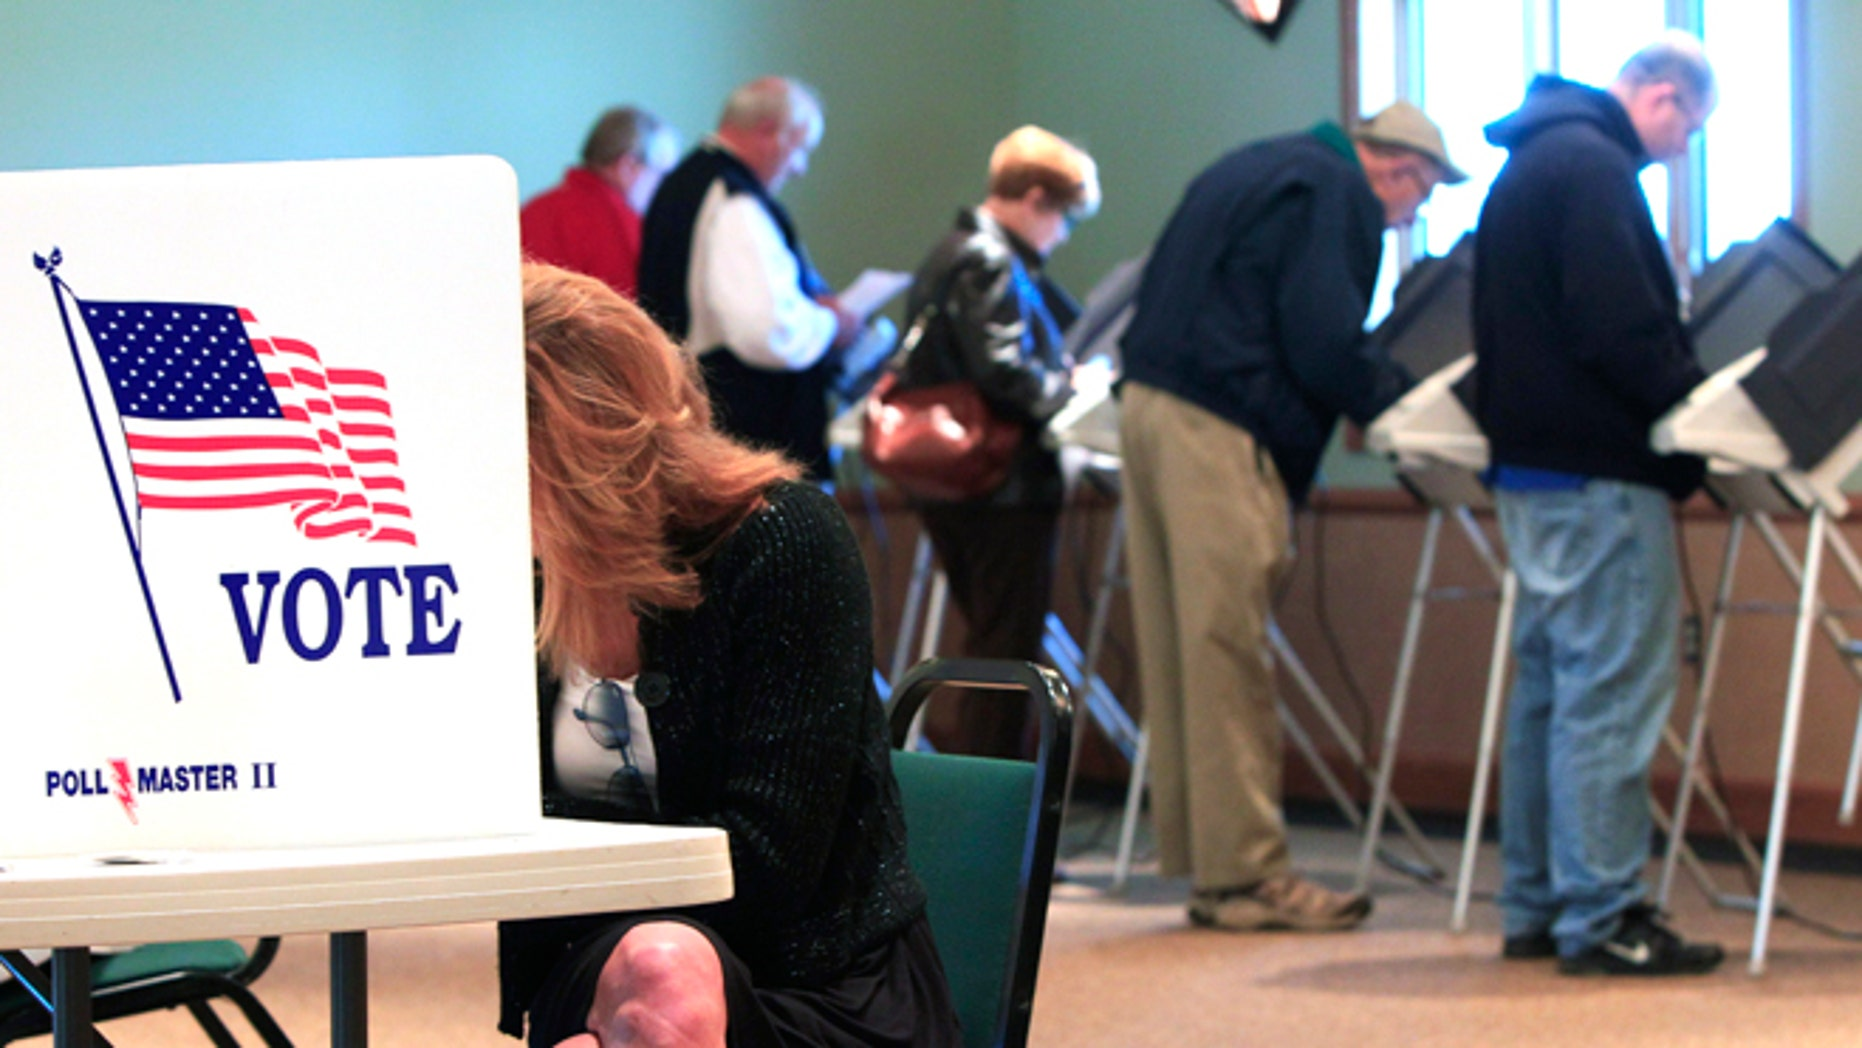 Nov. 6, 2012: A steady stream of voters fill the voting booths at Ronald Reagan Lodge in West Chester, Ohio.